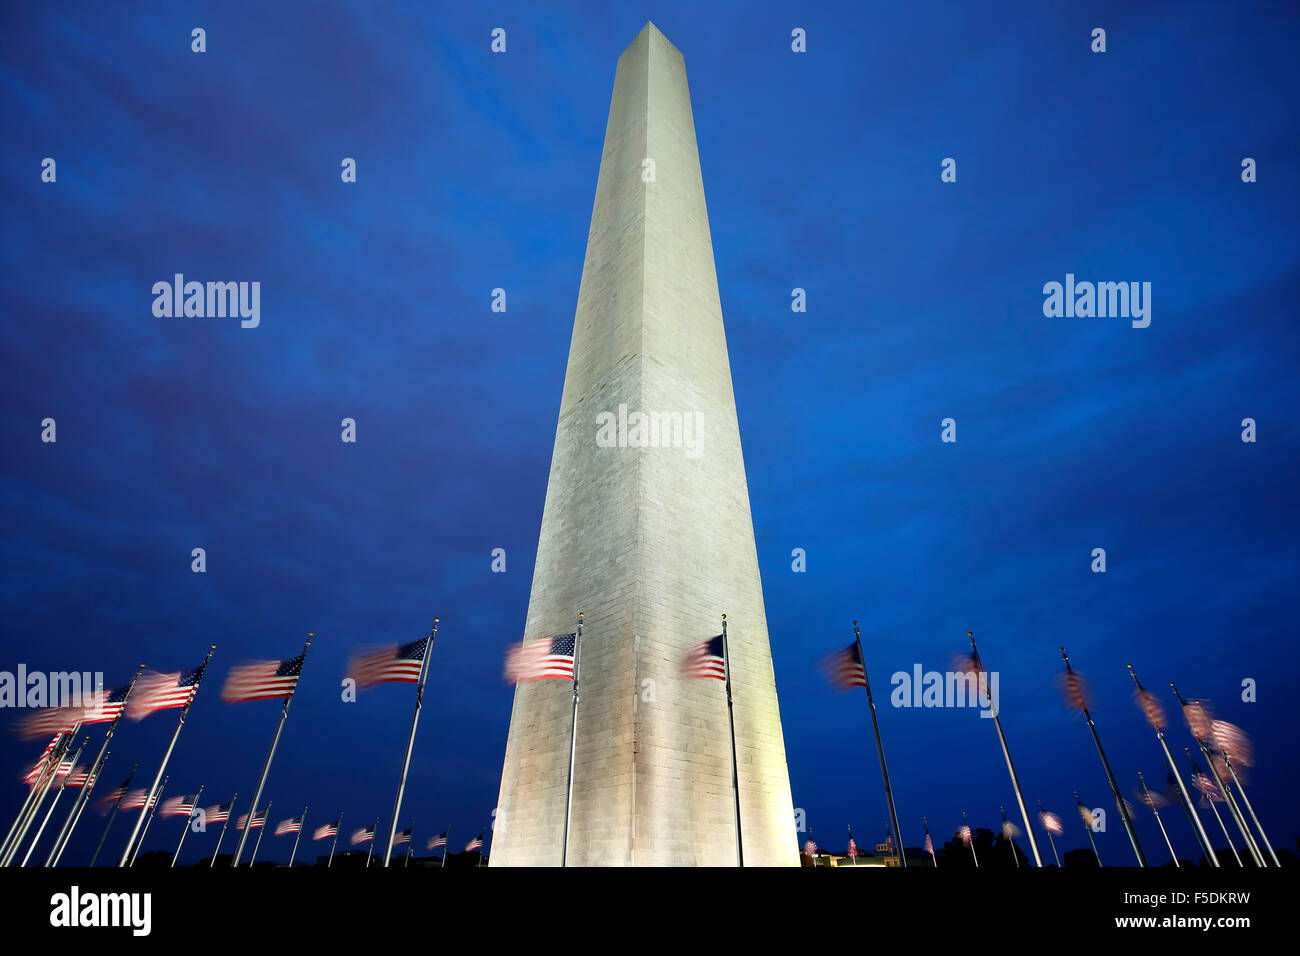 Washington Memorial e bandierine americane, Washington, Distretto di Columbia USA Immagini Stock